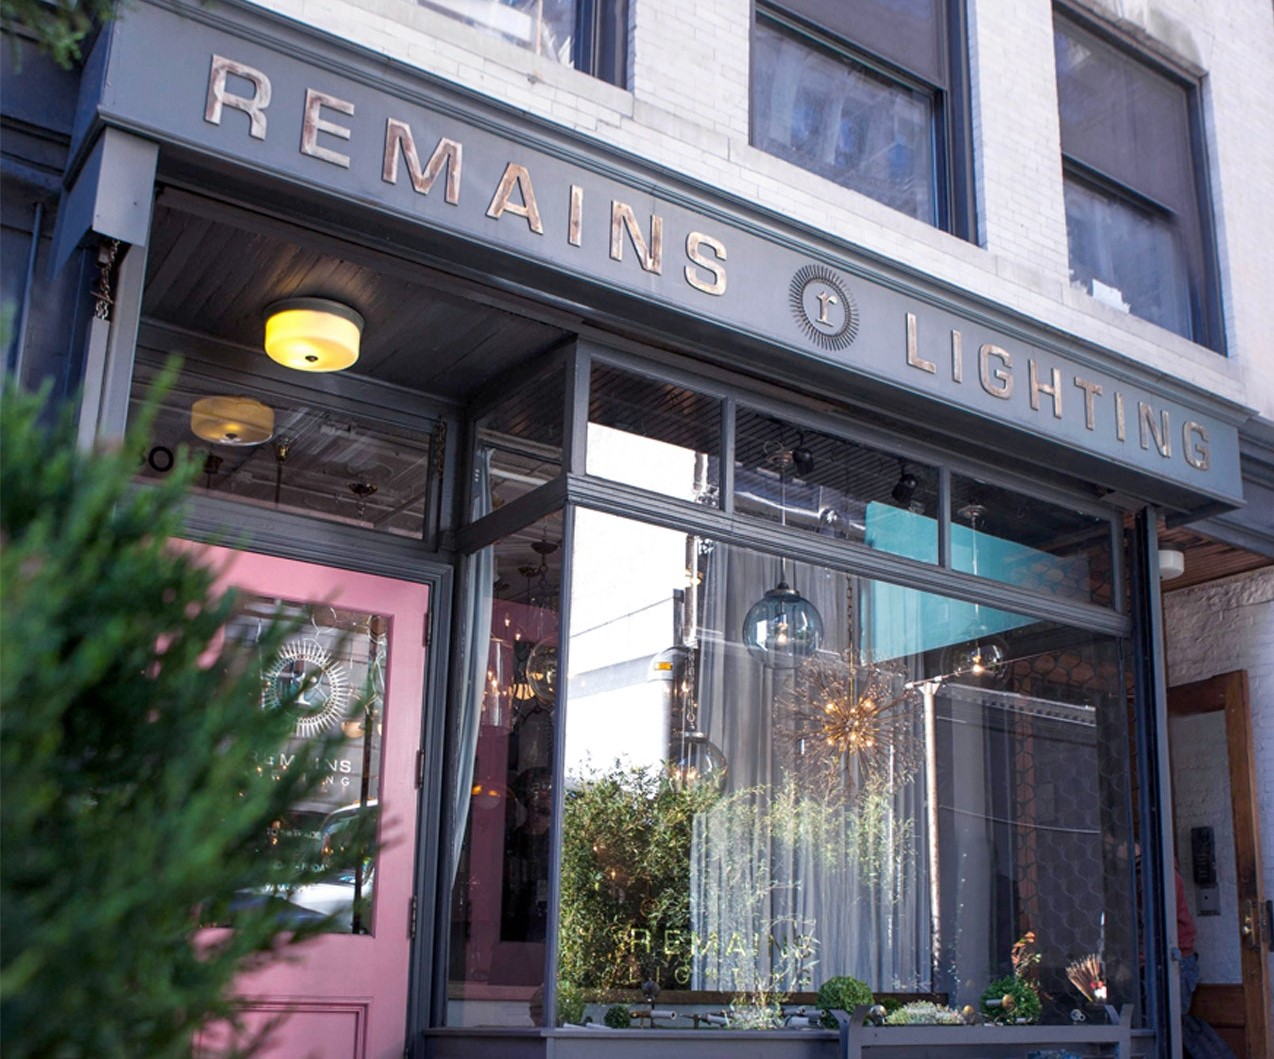 Top 5 Lighting Stores You Can Find In New York City 3 Lighting Stores Top 5 Lighting Stores You Can Find In New York City Top 5 Lighting Stores You Can Find In New York City 3